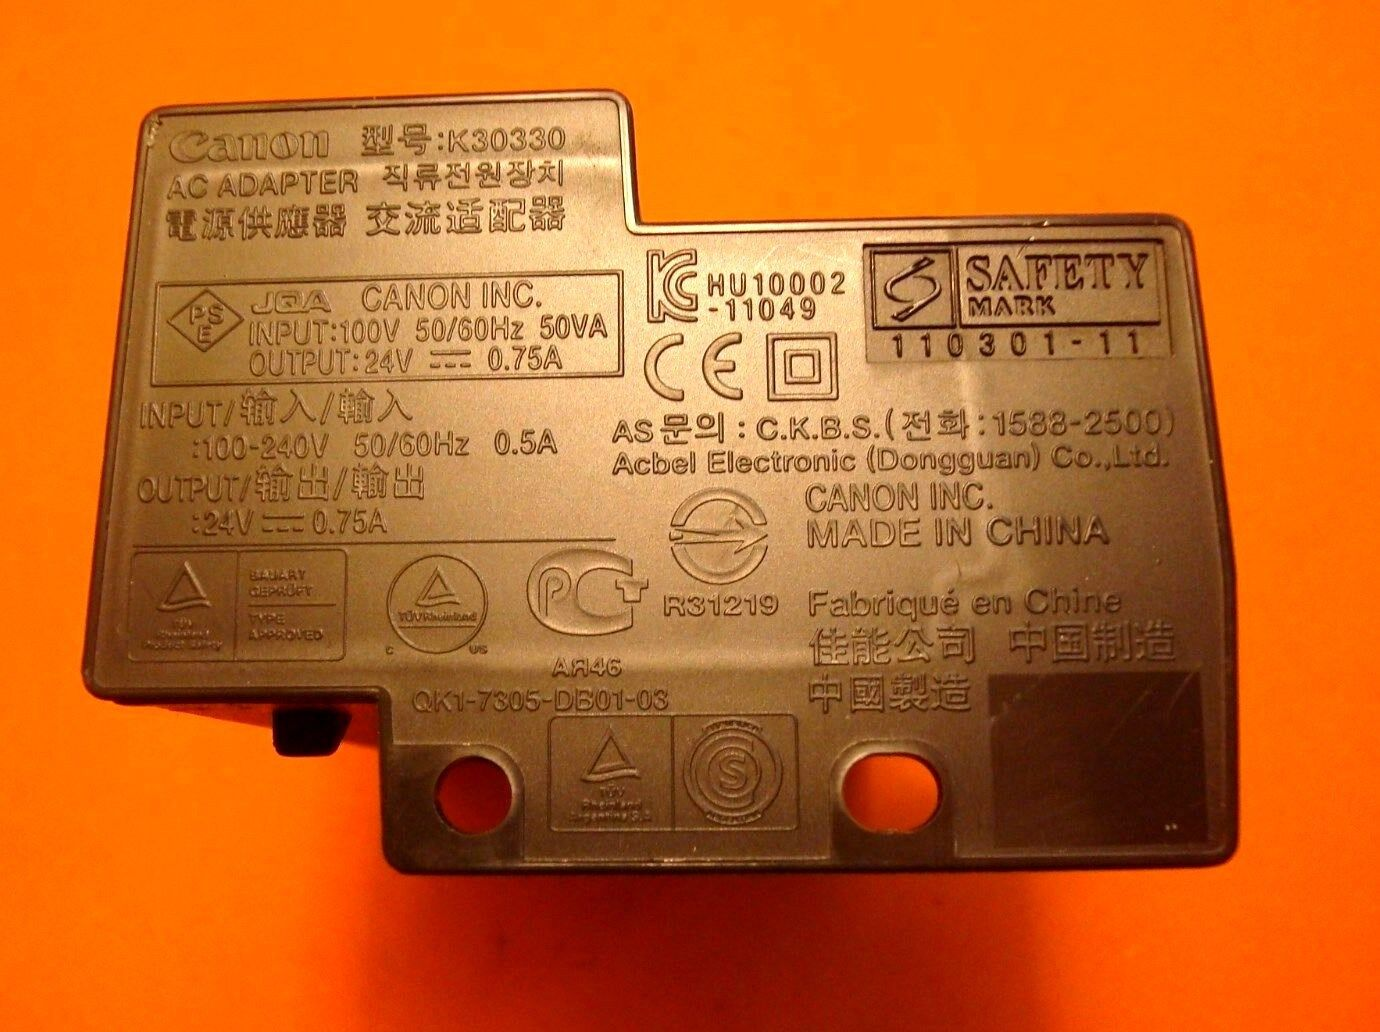 K30330 OEM Genuine Canon Power Adapter 24 V 0.75 a for Pixma Mg2120 ...